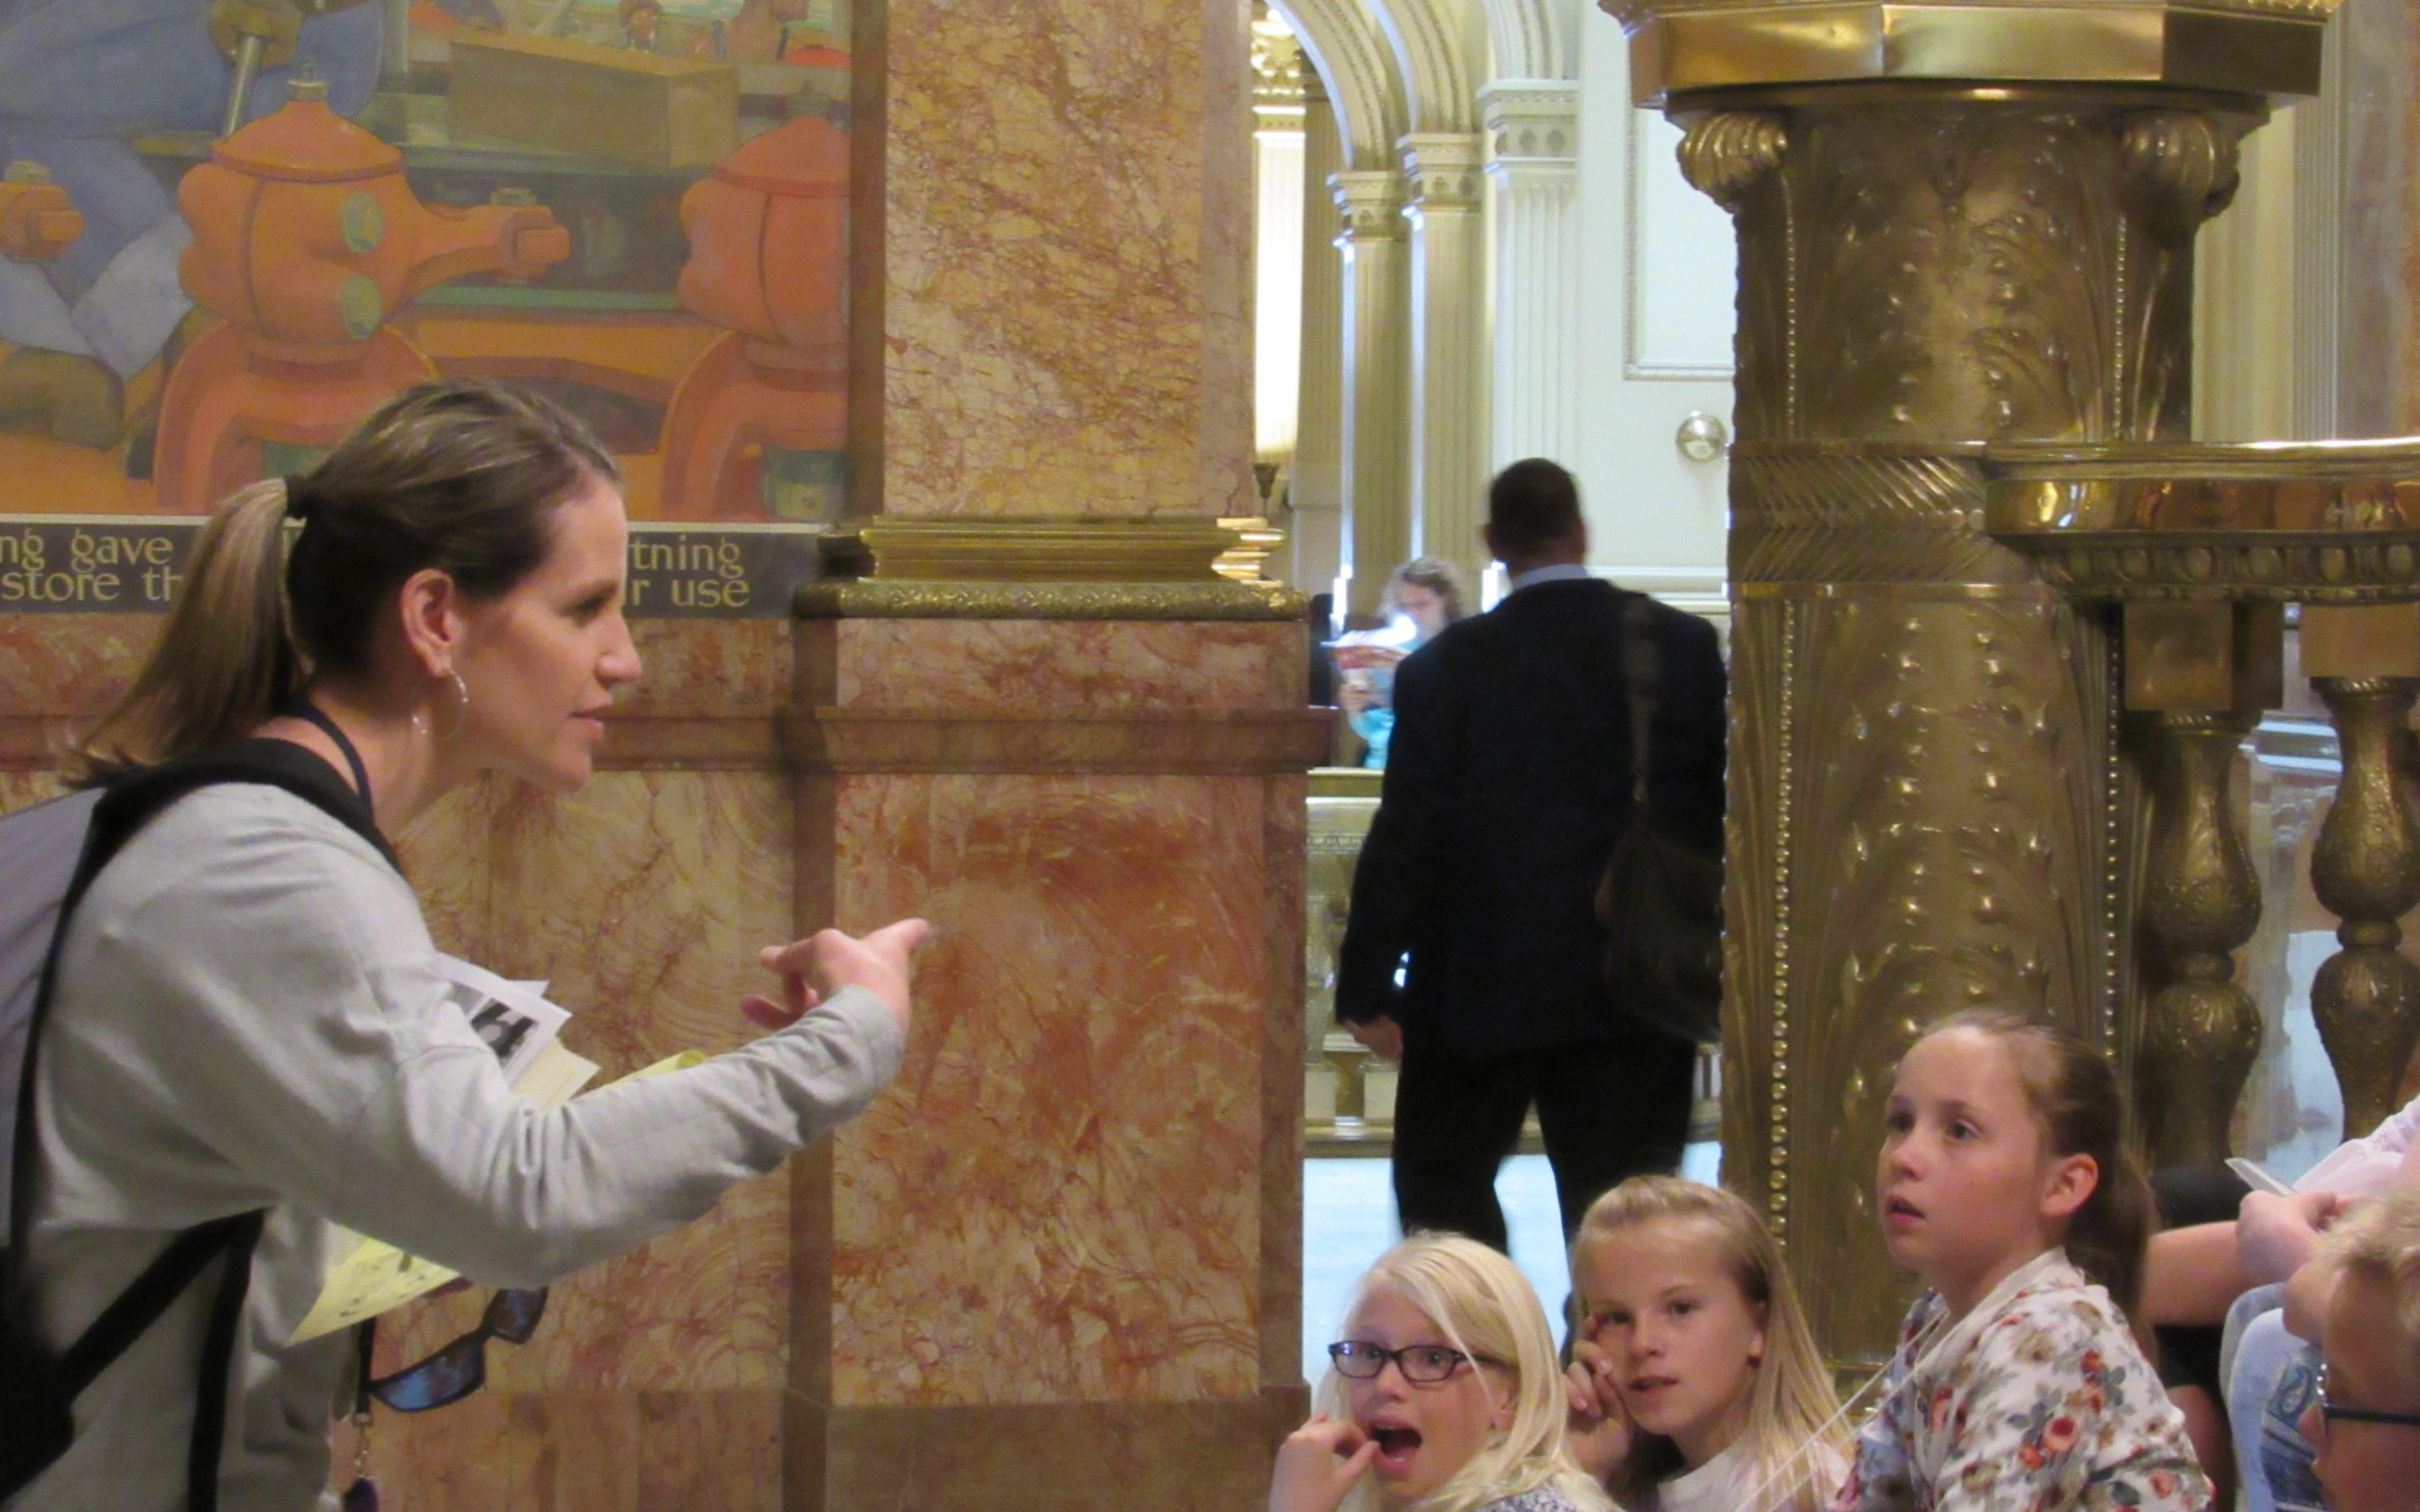 Trout Core Knowledge Teacher Courtney Petros discusses the work of Colorado lawmakers with her fourth grade students on May 3, the last day of the session. The Fort Collins school brings students to the legislature each year on closing day. Credit: Jerd Smith